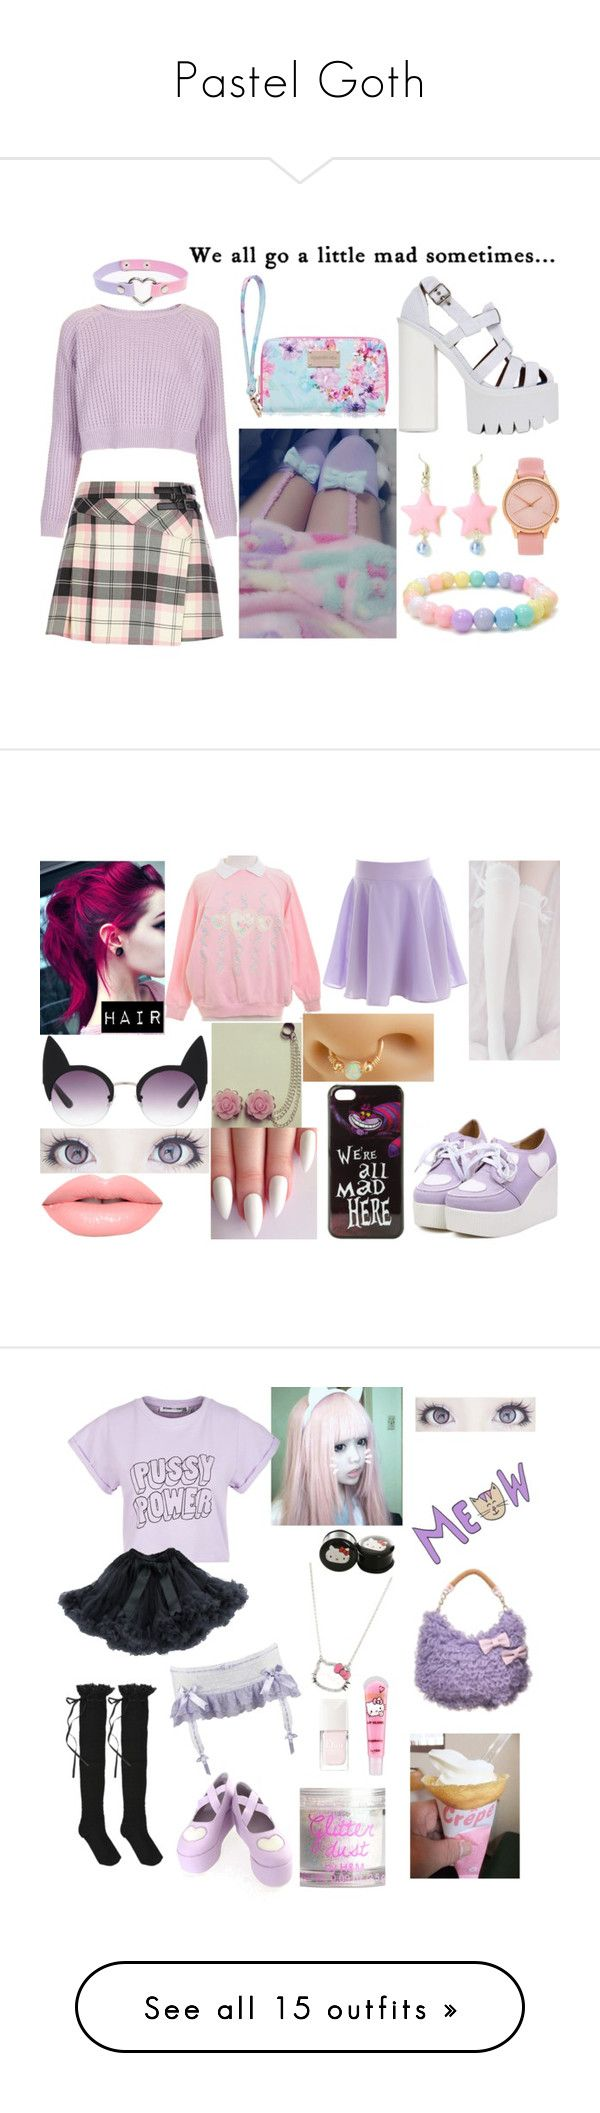 """Pastel Goth"" by milly-burley ❤ liked on Polyvore featuring Forever New, River Island, Topshop, Komono, Jeffrey Campbell, women's clothing, women, female, woman and misses"